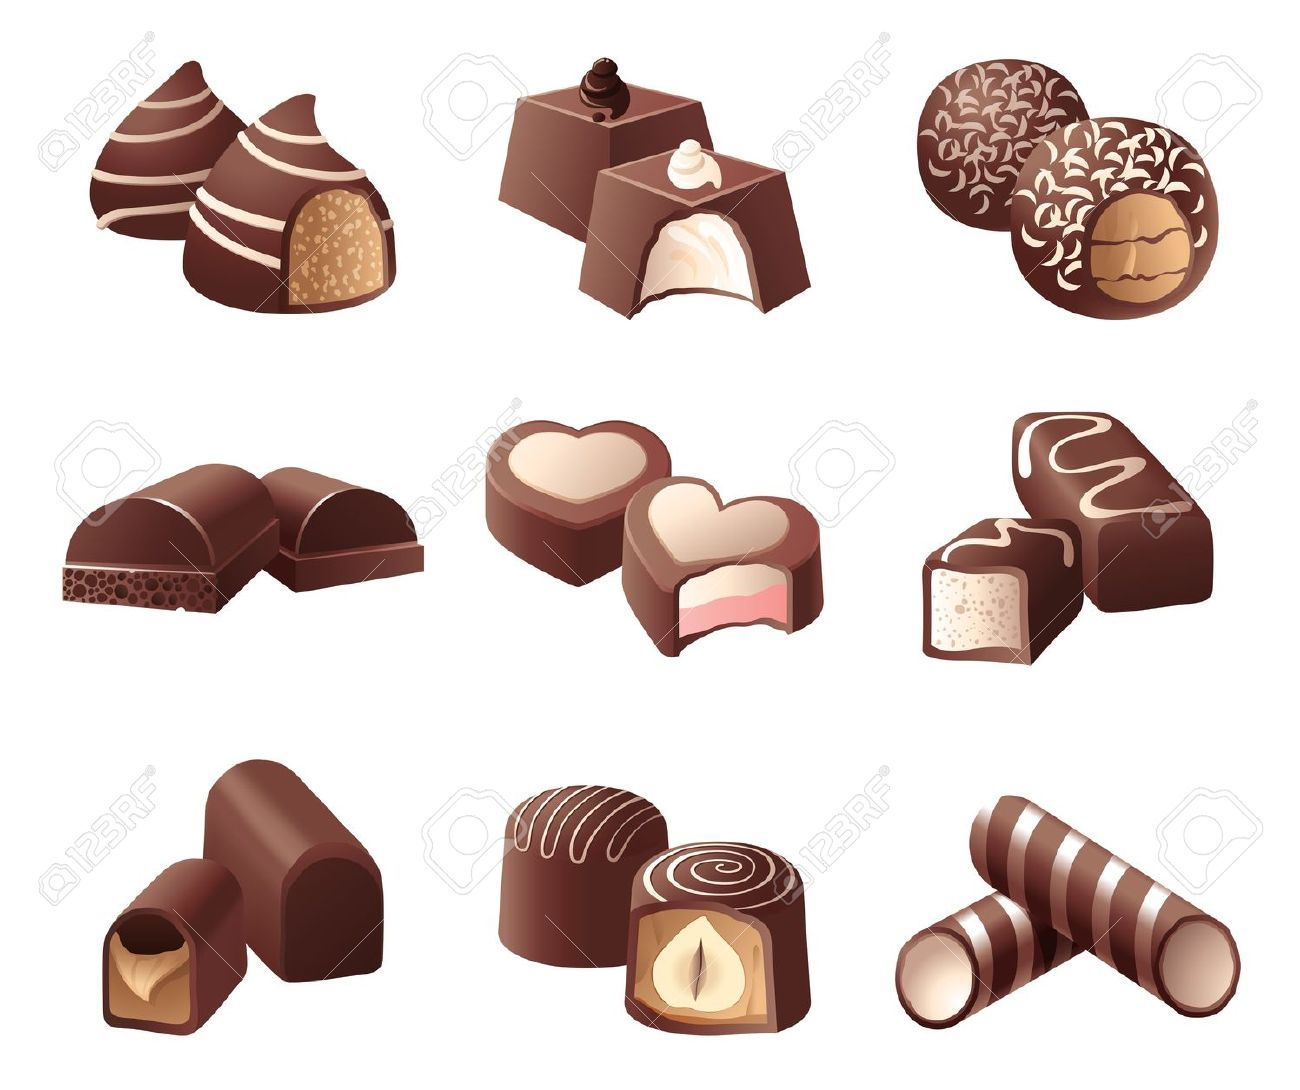 9 Highly Detailed Chocolate Candies Royalty Free Cliparts, Vectors.